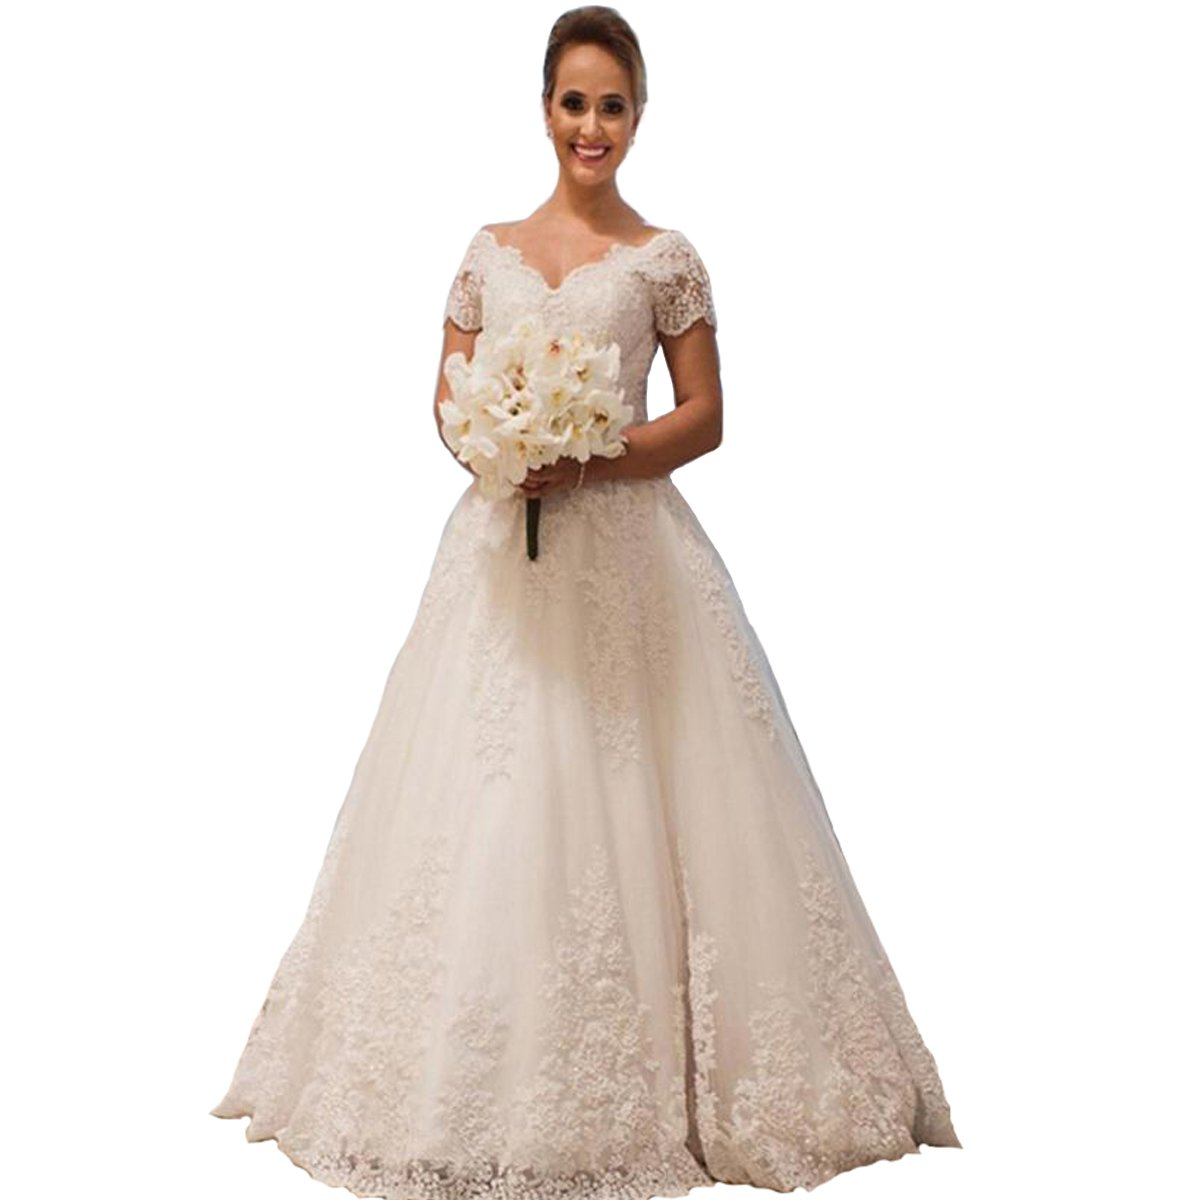 Yuxin Elegant Lace Ball Gown Wedding Dresses Appliques V Neck Short